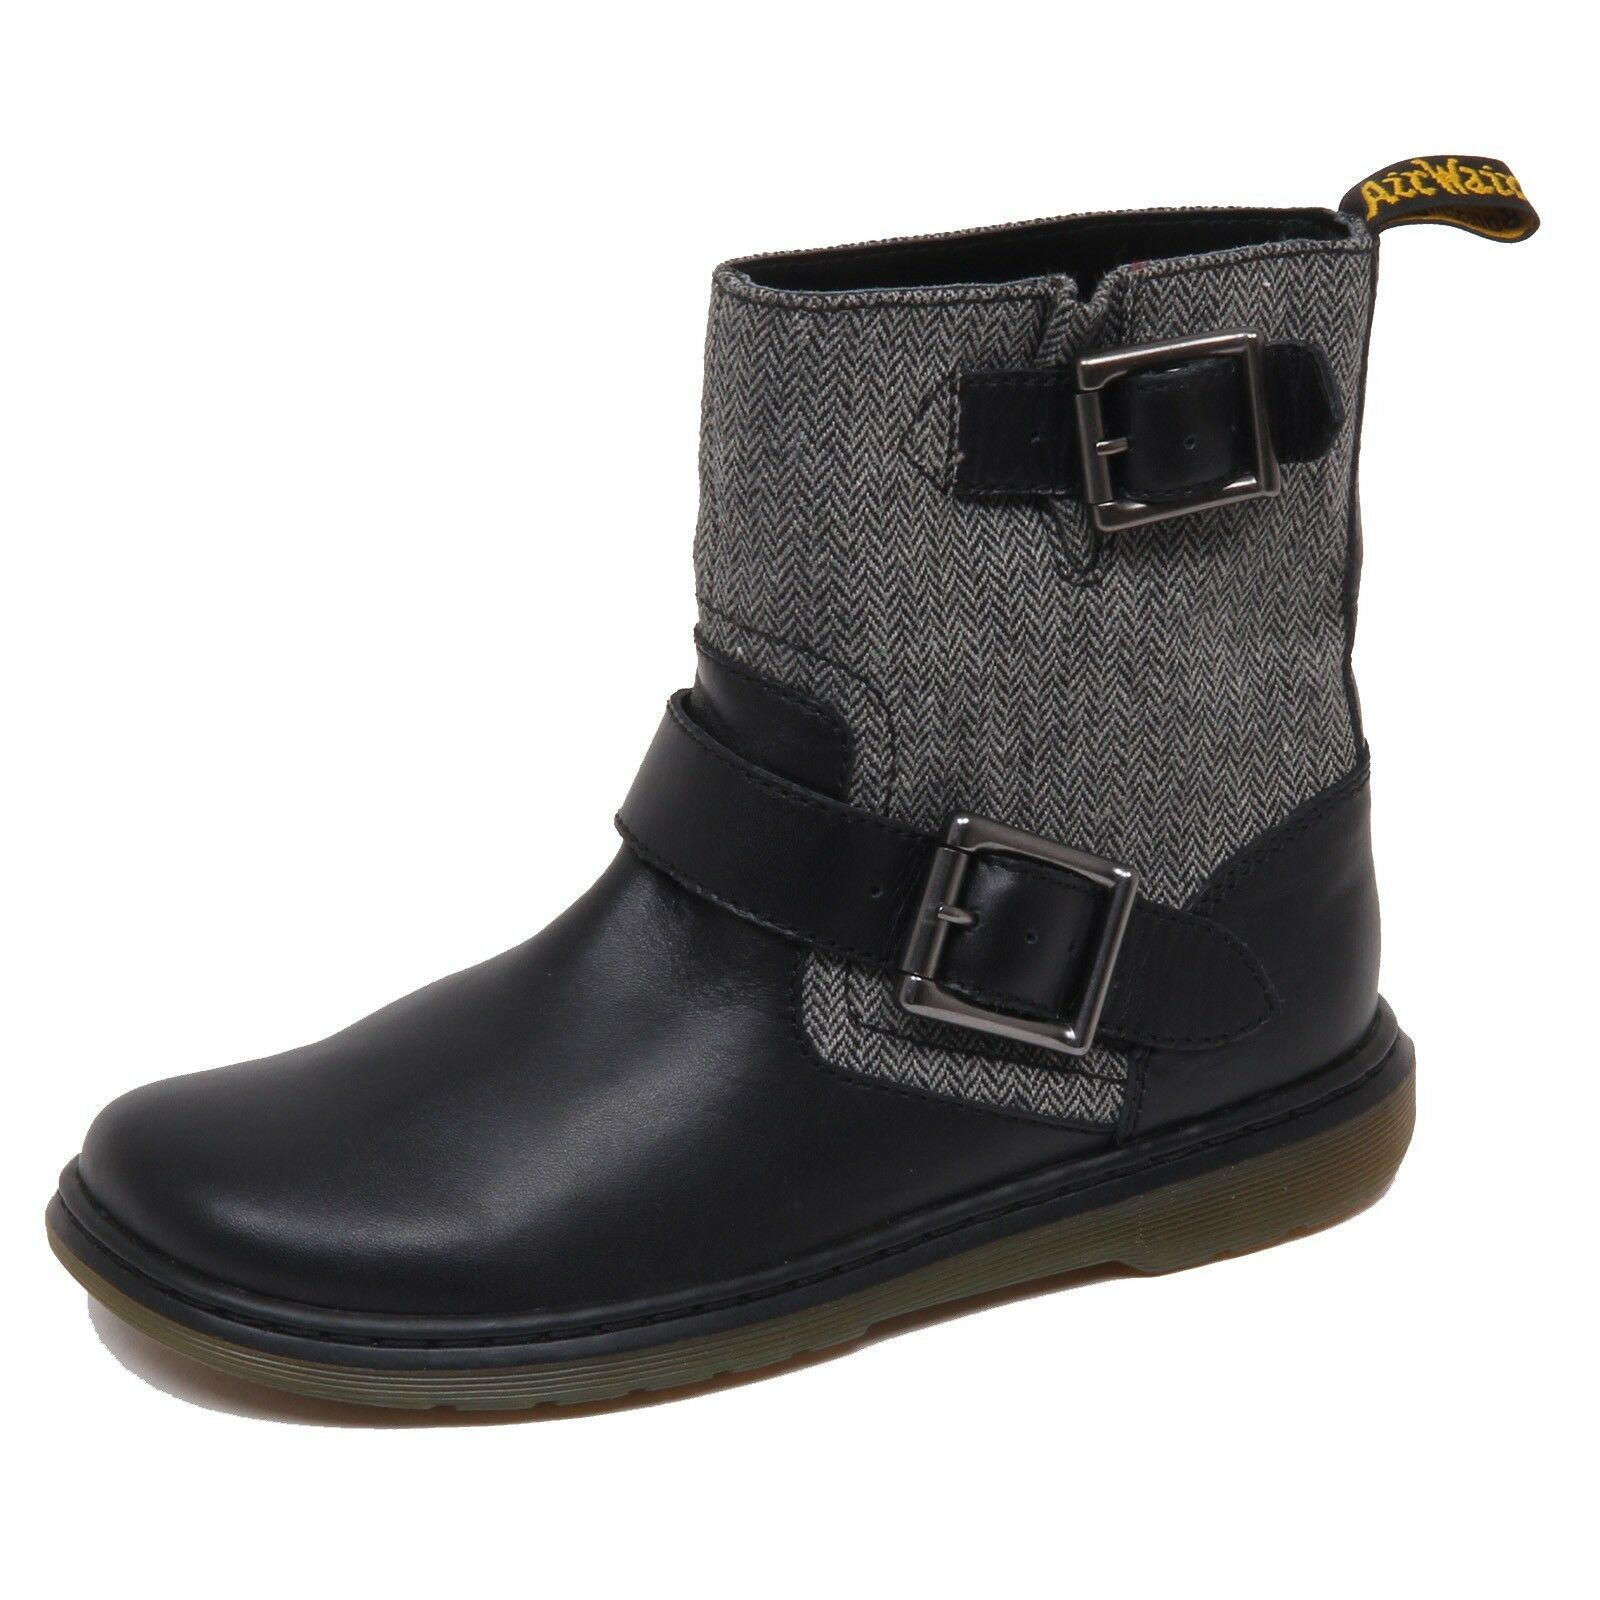 F1550 (NO BOX) stivale donna nero grigio DR. MARTENS tissue leather avvio woman